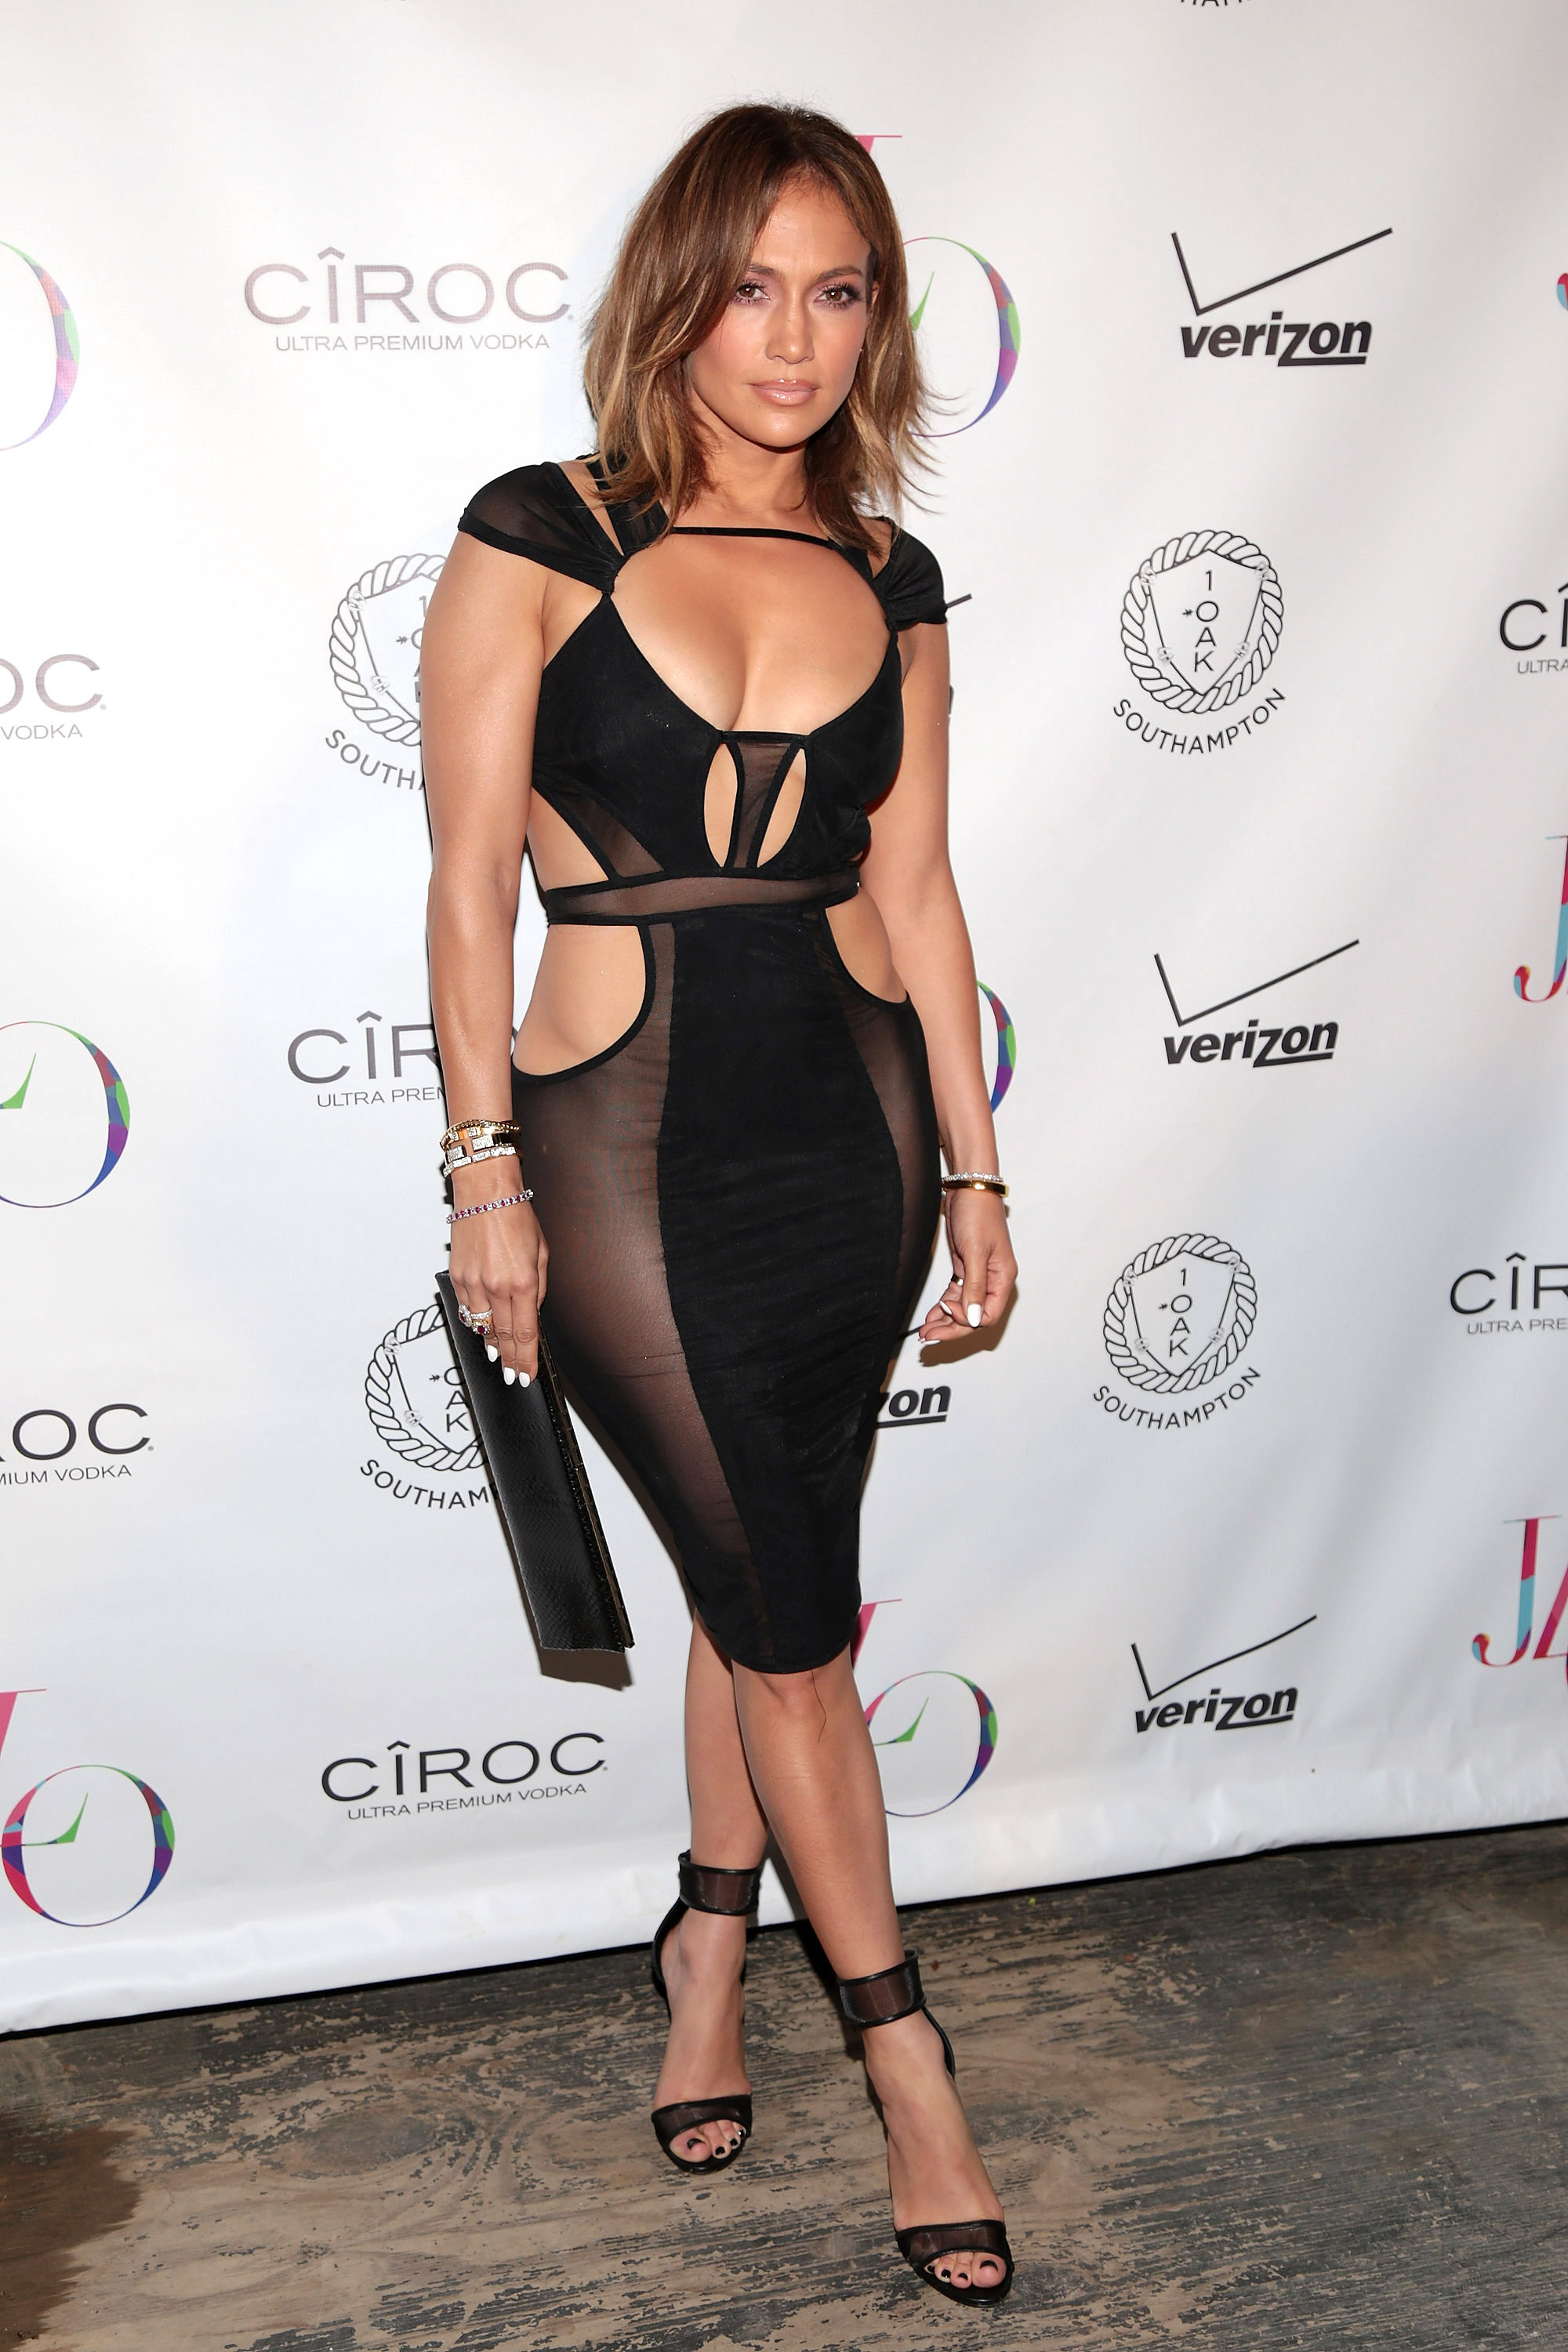 SOUTHAMPTON, NY - JULY 25: Jennifer Lopez attends her Birthday Celebration at 1OAK Southampton on July 25, 2015 in Southampton City. (Photo by Jerritt Clark/Getty Images)